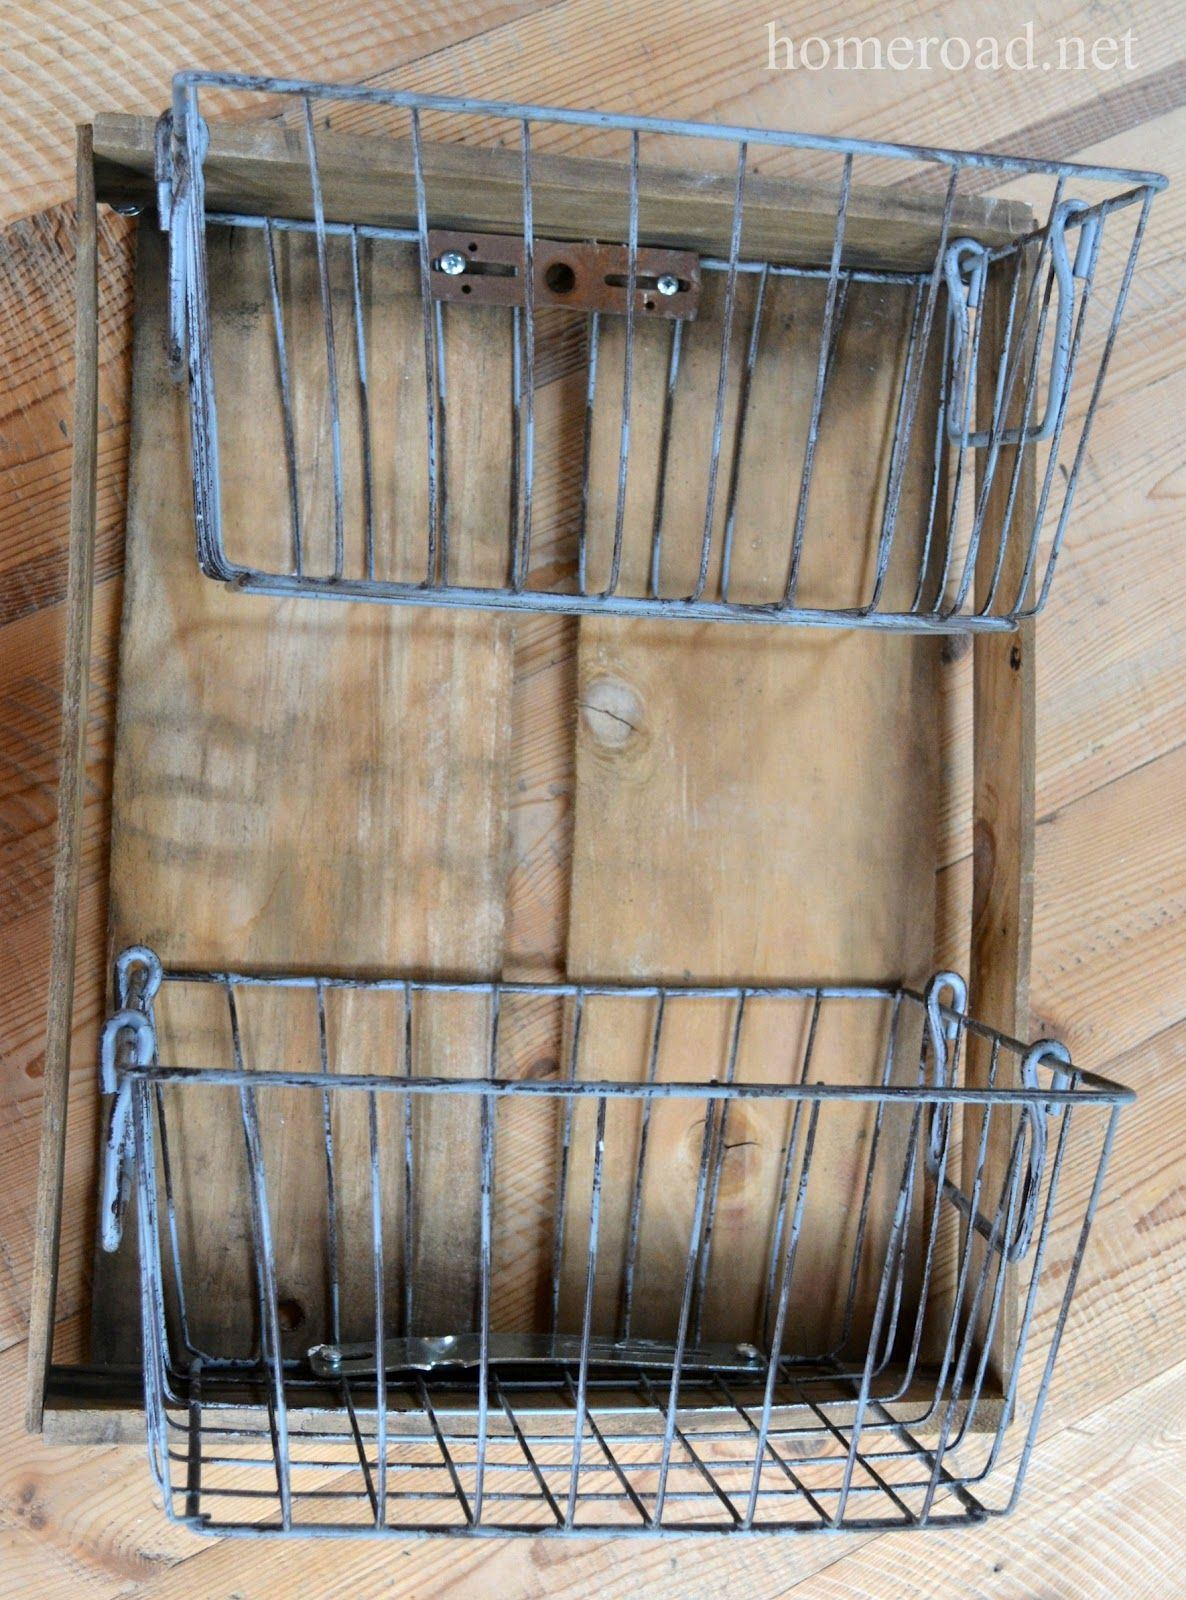 Homeroad Bathroom Storage Solutions Wire Baskets Inside Crate To Hang For  Storage